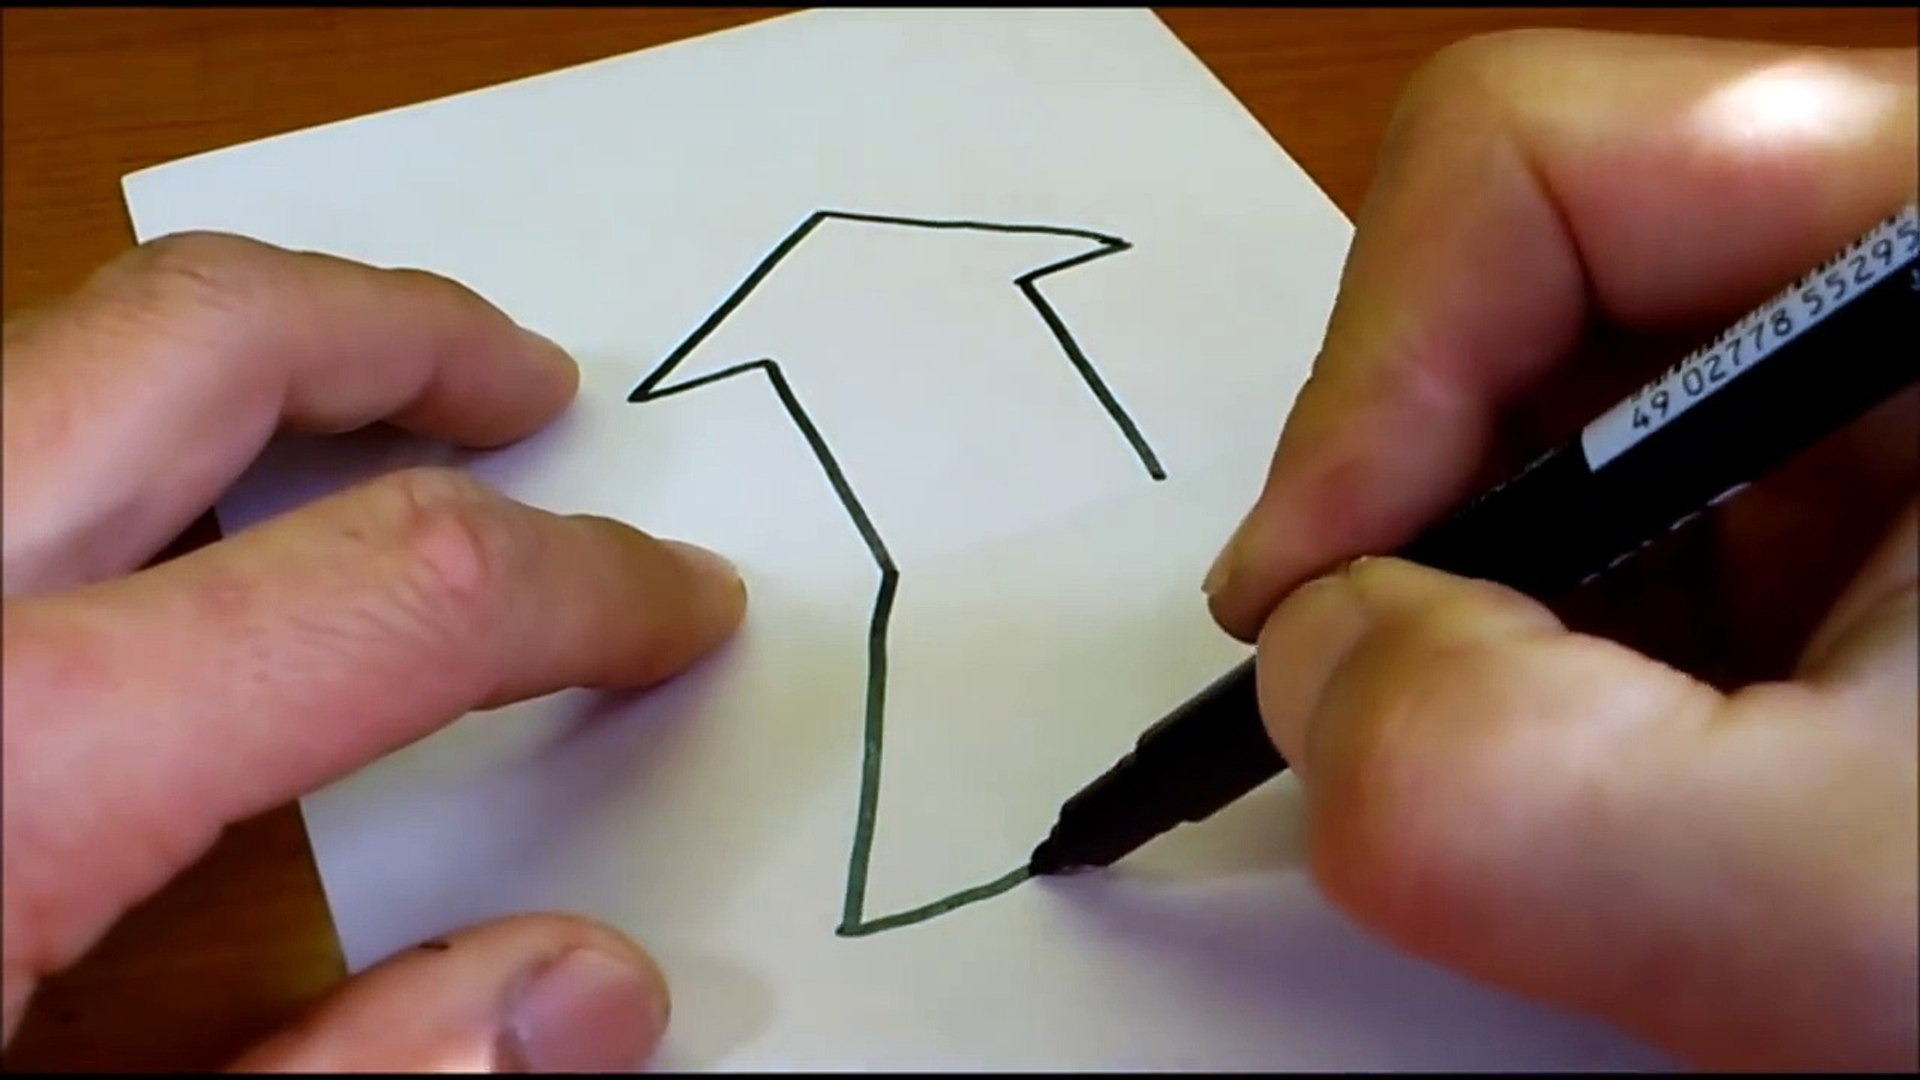 Very Easy How To Draw 3d Arrow For Kids Anamorphic Illusion 3d Trick Art Drawing On Paper 9zblrjmblpq